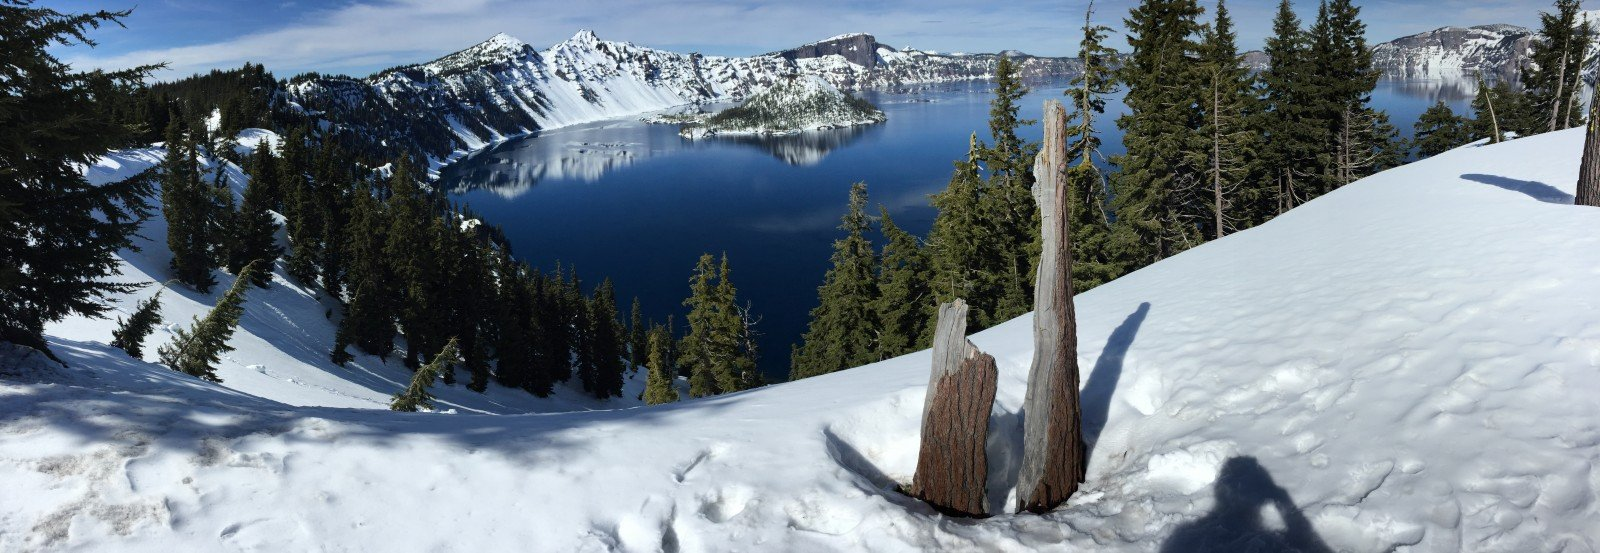 Crater Lake, OR